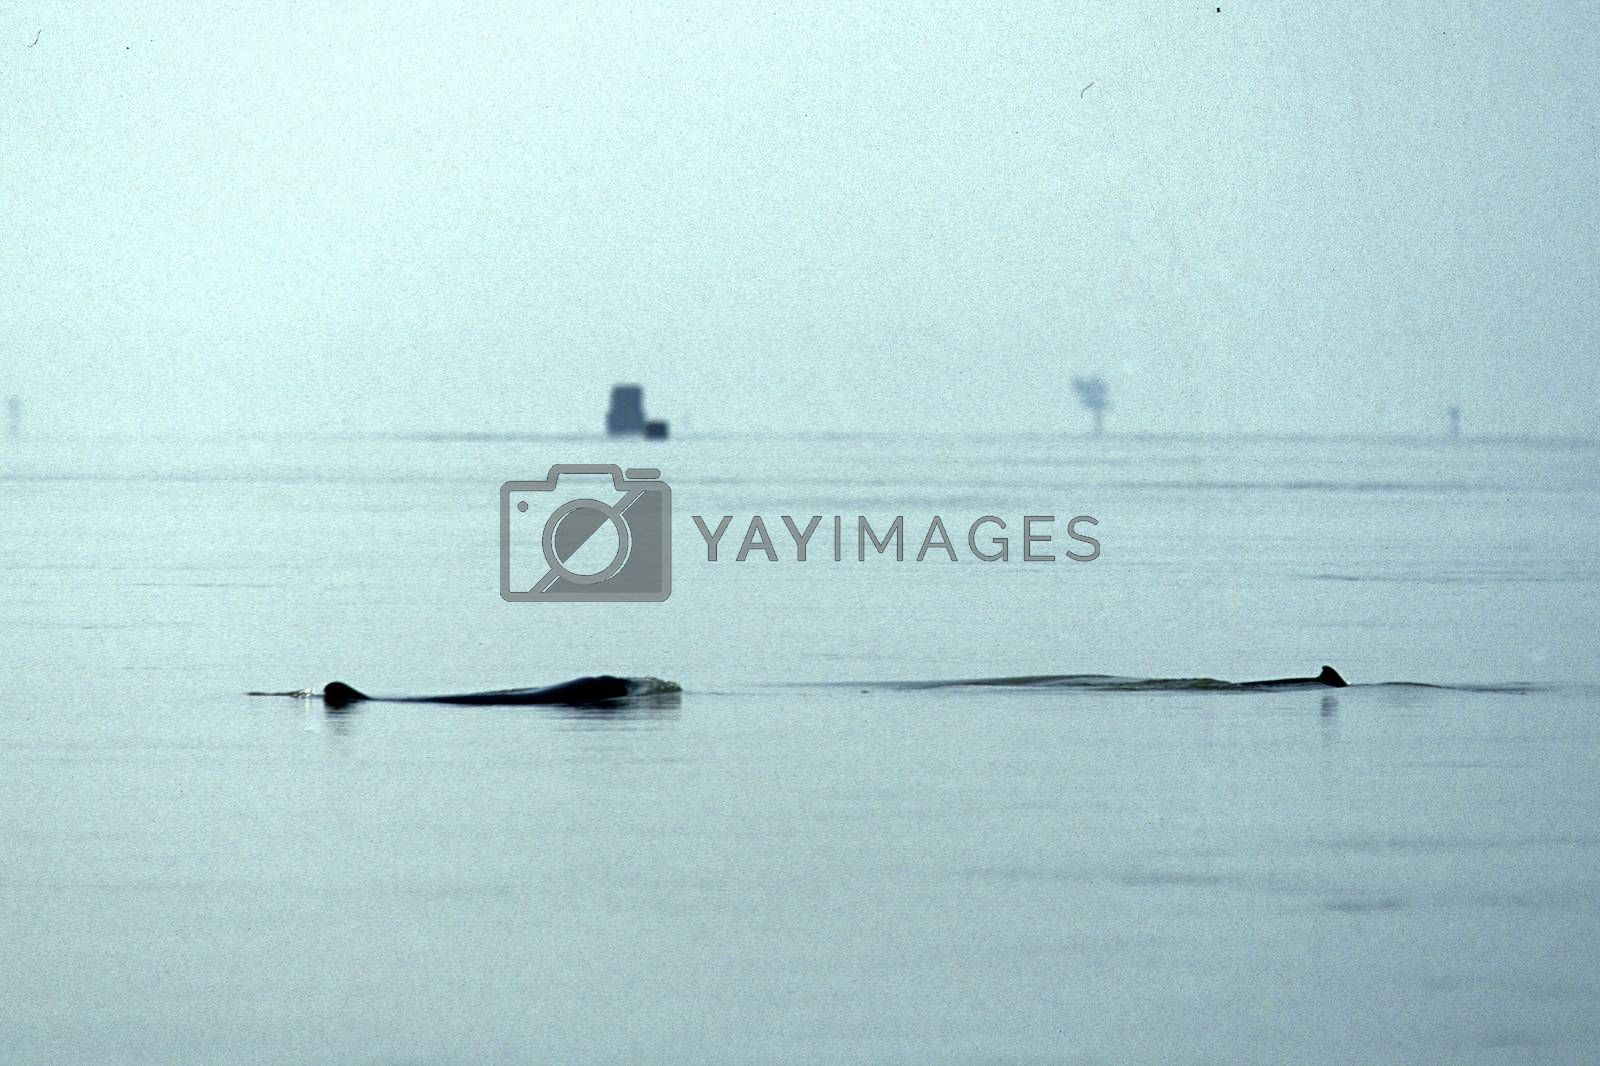 a mekong river Dolphin on the Mekong river at the village of Kratie in the centre of Cambodia.  Cambodia, Kampong Cham, February, 2001,